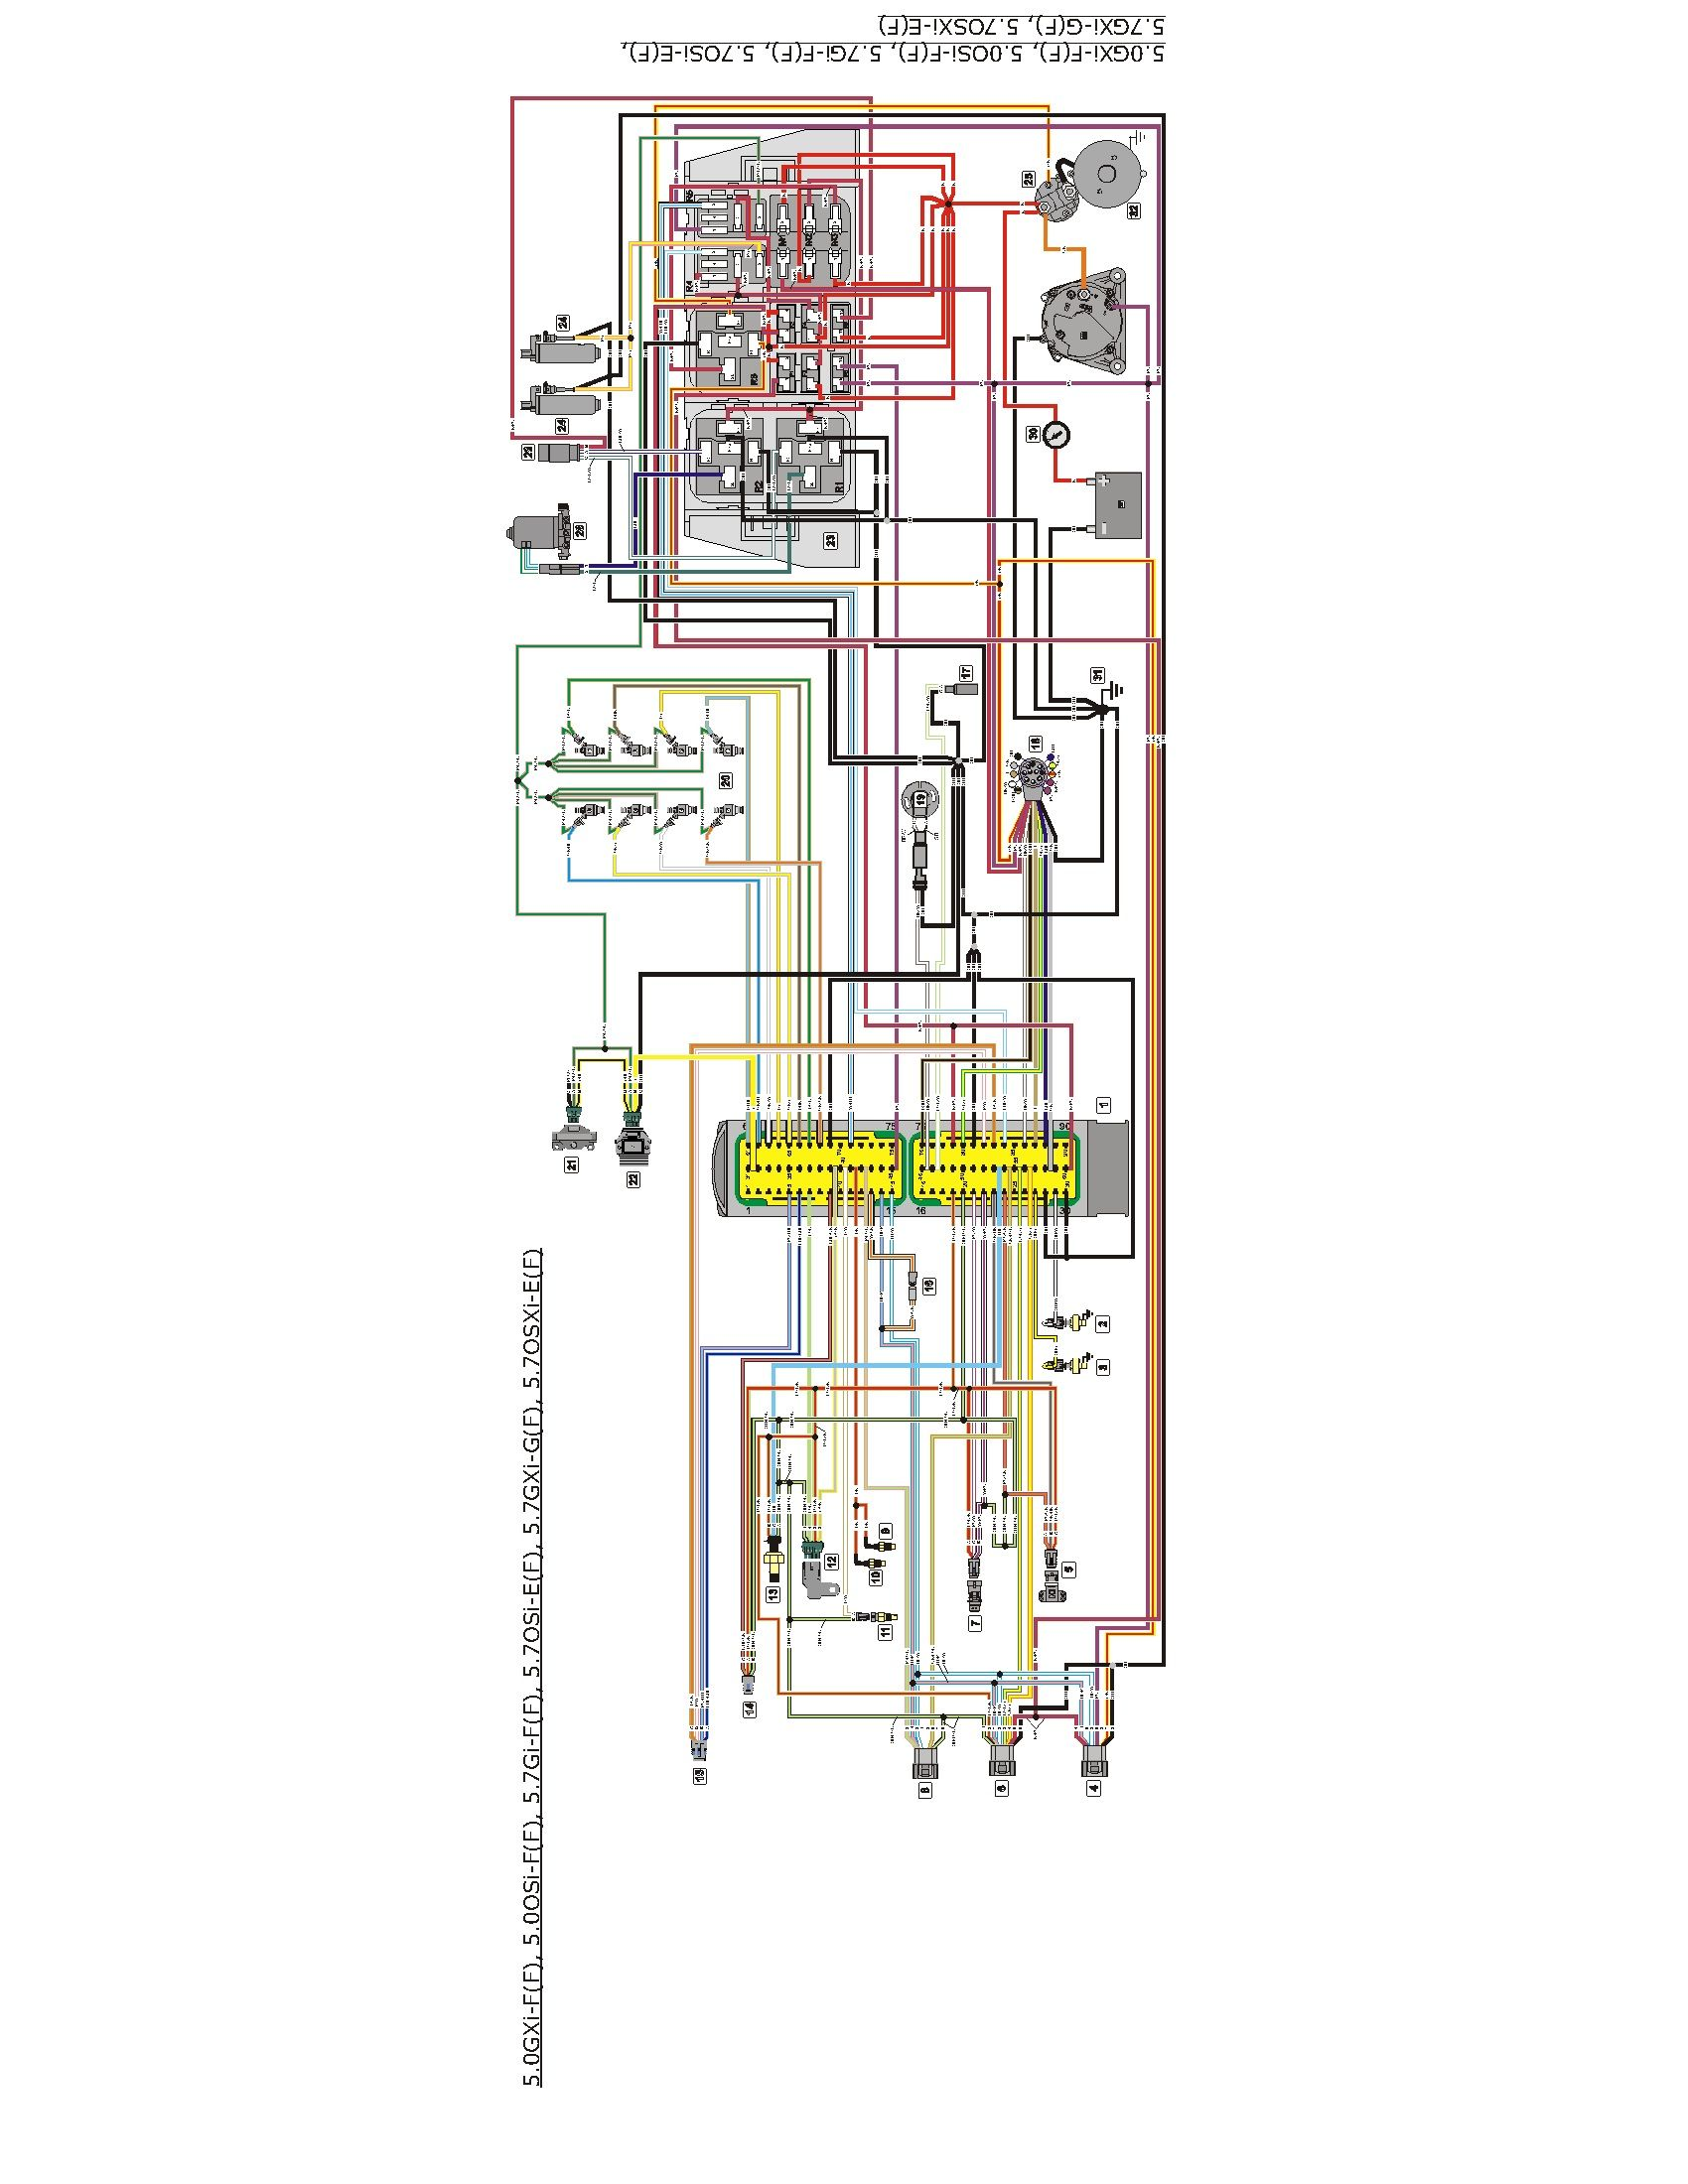 38e0106861e0fe47e508530985b32839 volvo penta 5 7 wiring diagram simple boat wiring diagram \u2022 free volvo penta 5.7 gxi wiring diagram at eliteediting.co